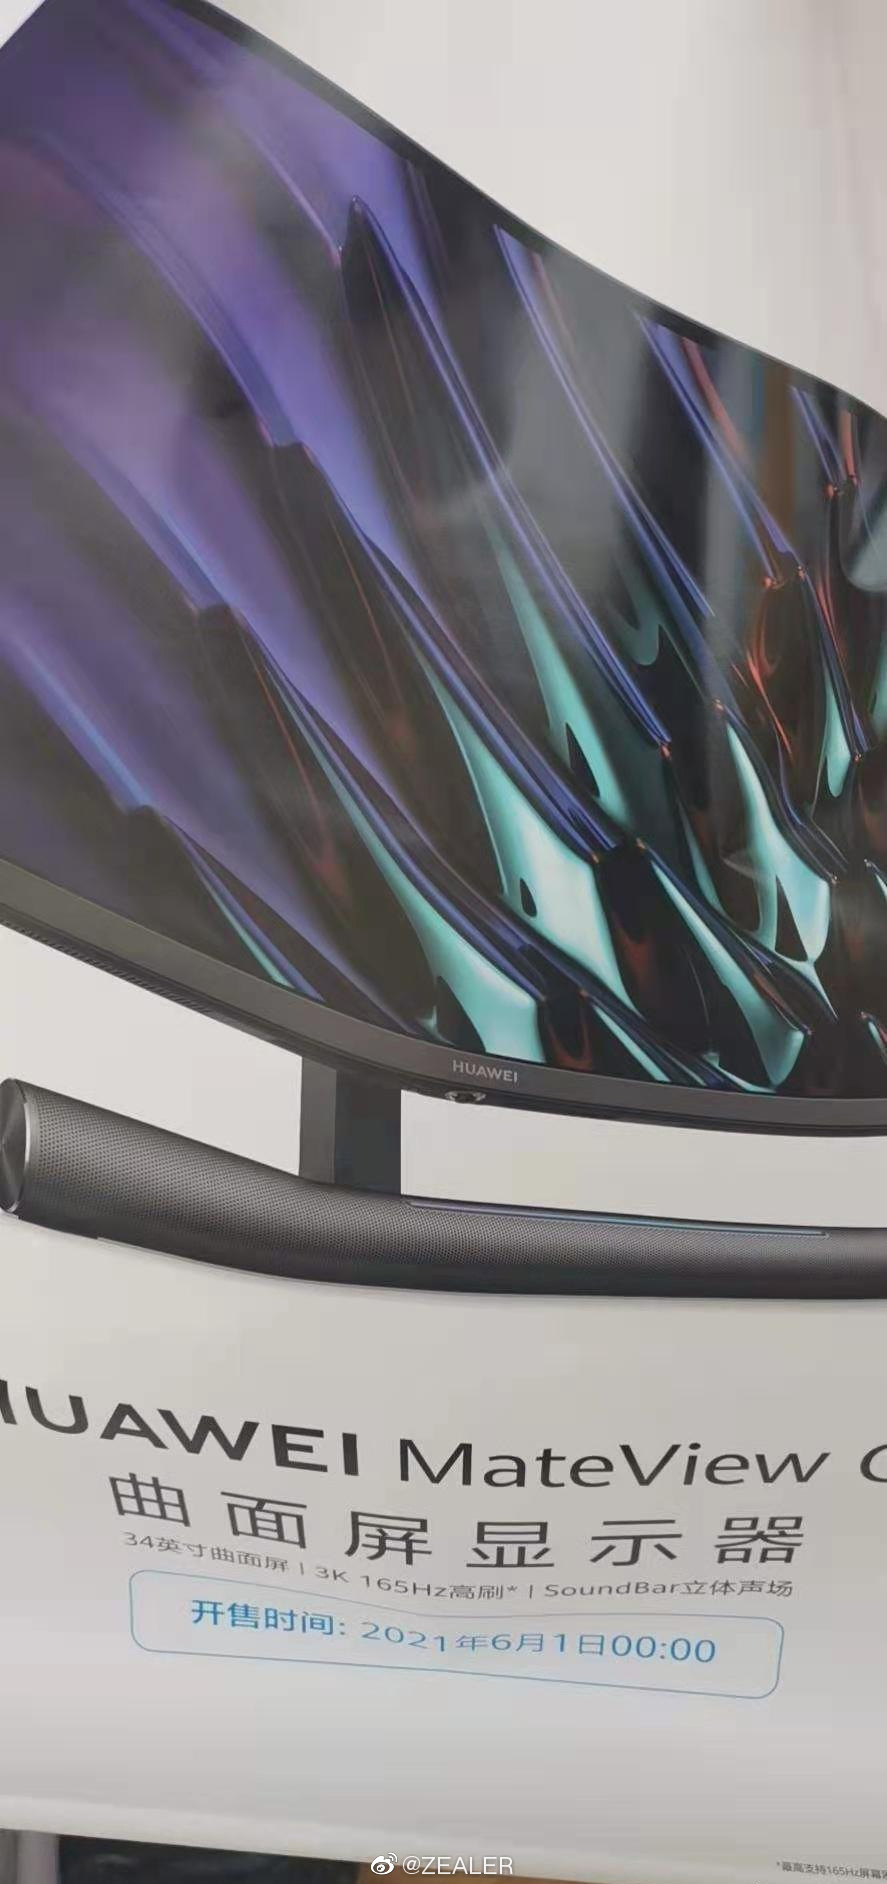 Huawei MateView 34-inch curved screen display poster leaked